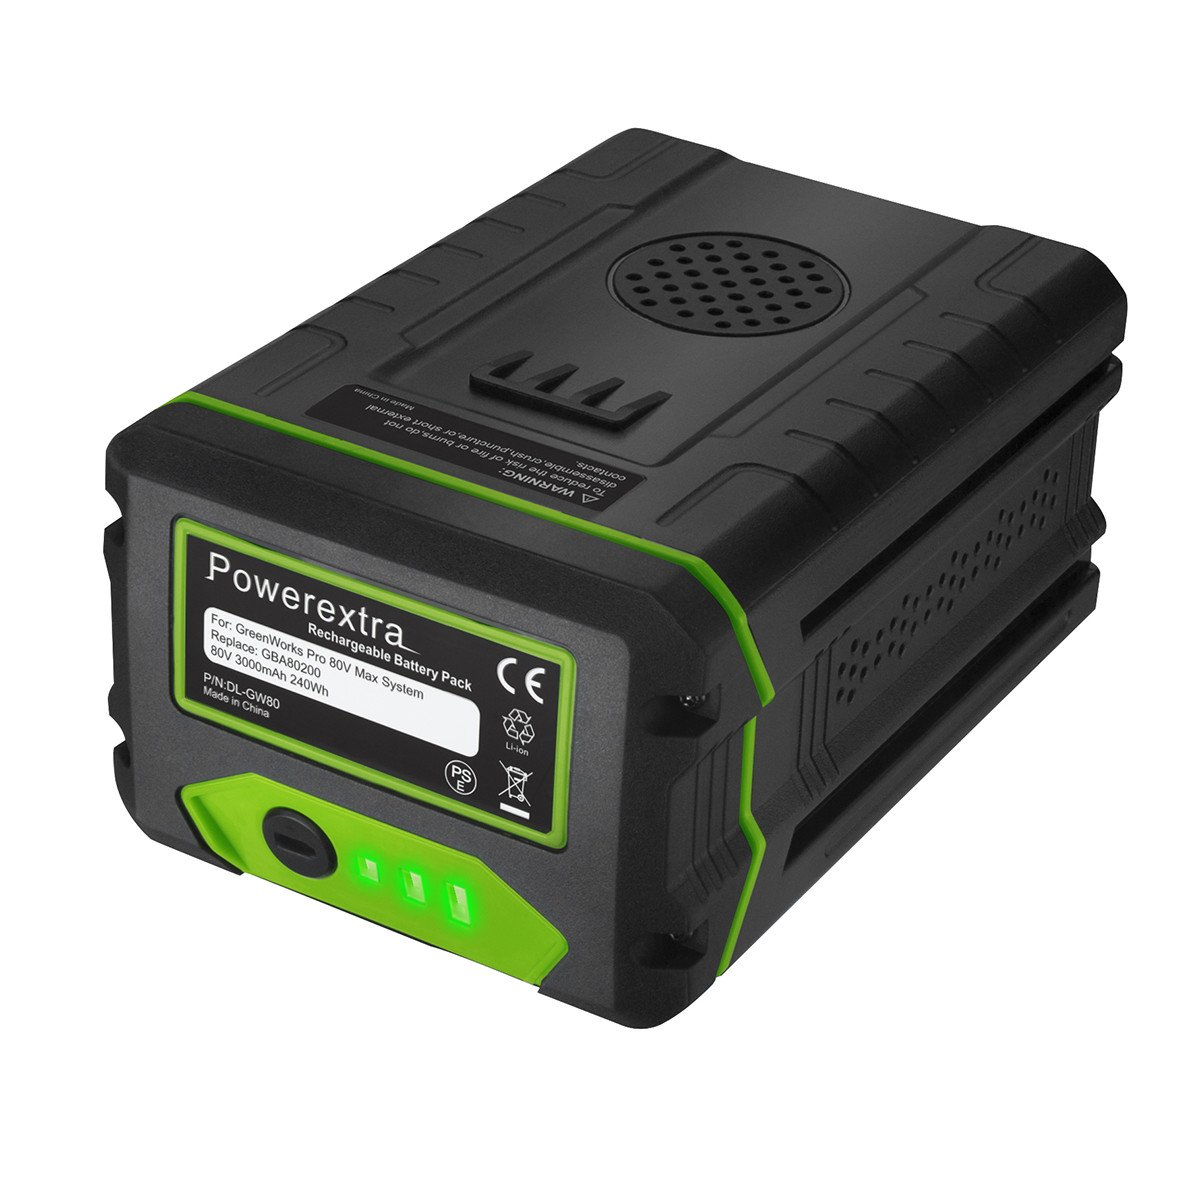 Powerextra 80V 3.0Ah Replacement Battery Compatible with Greenworks PRO 80V Lithium Ion Battery GBA80200